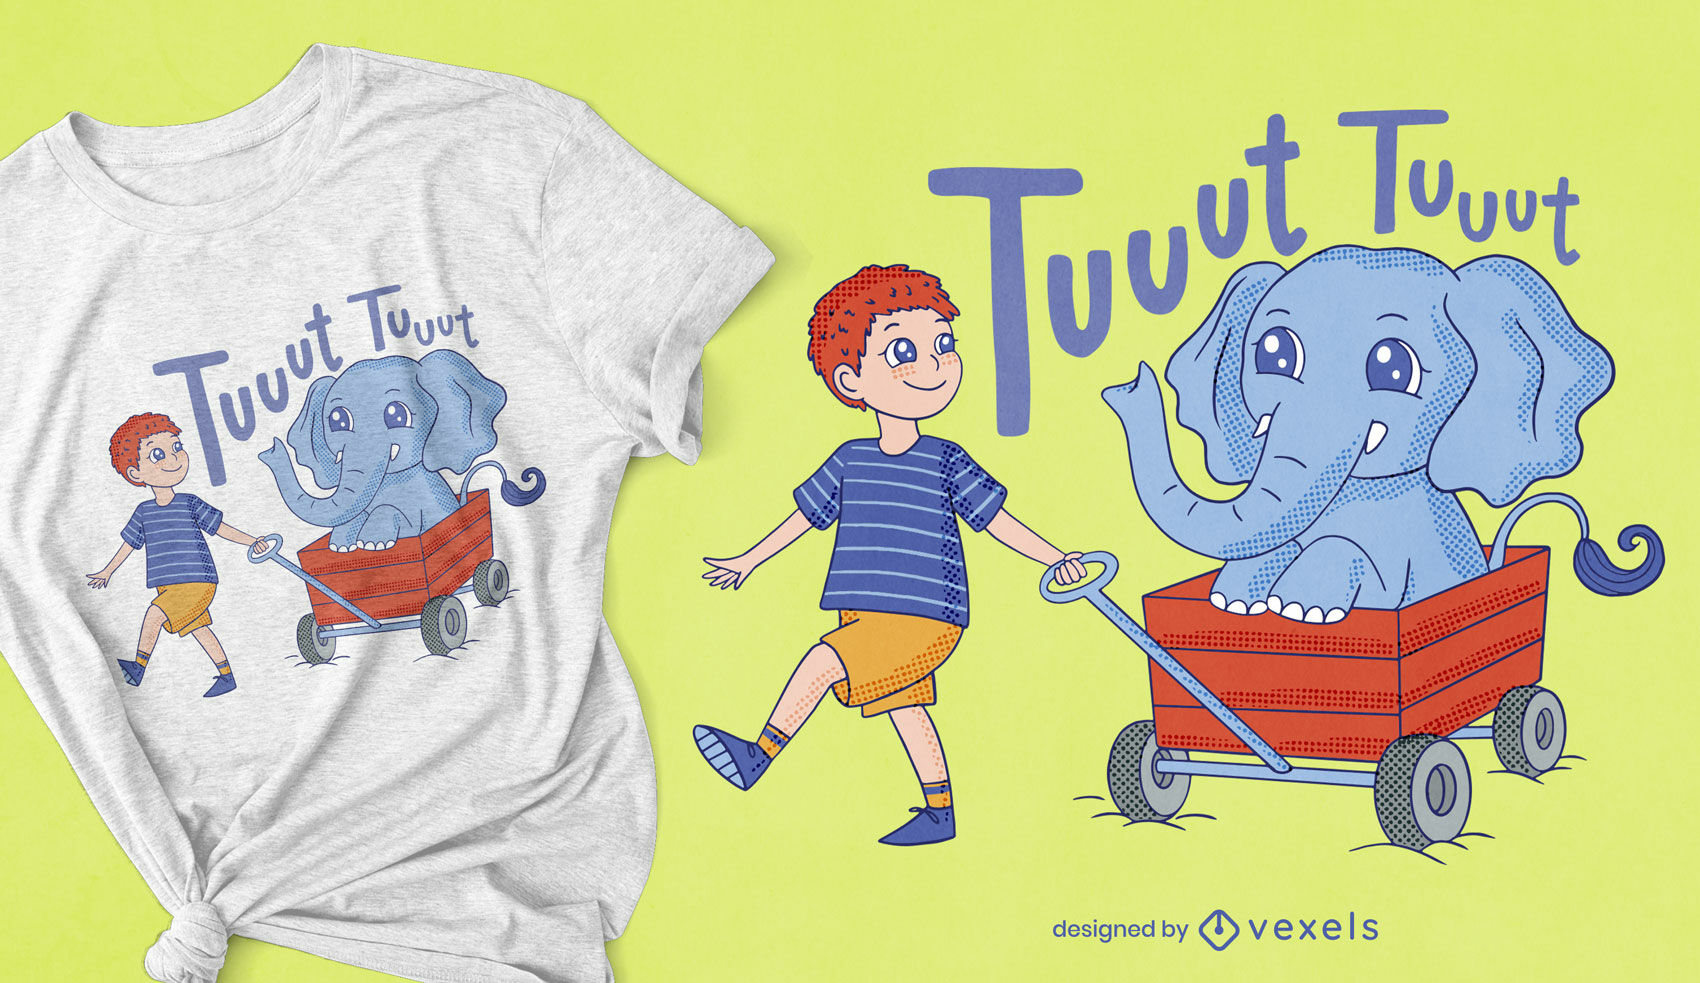 Cute kid and elephant in a cart t-shirt design